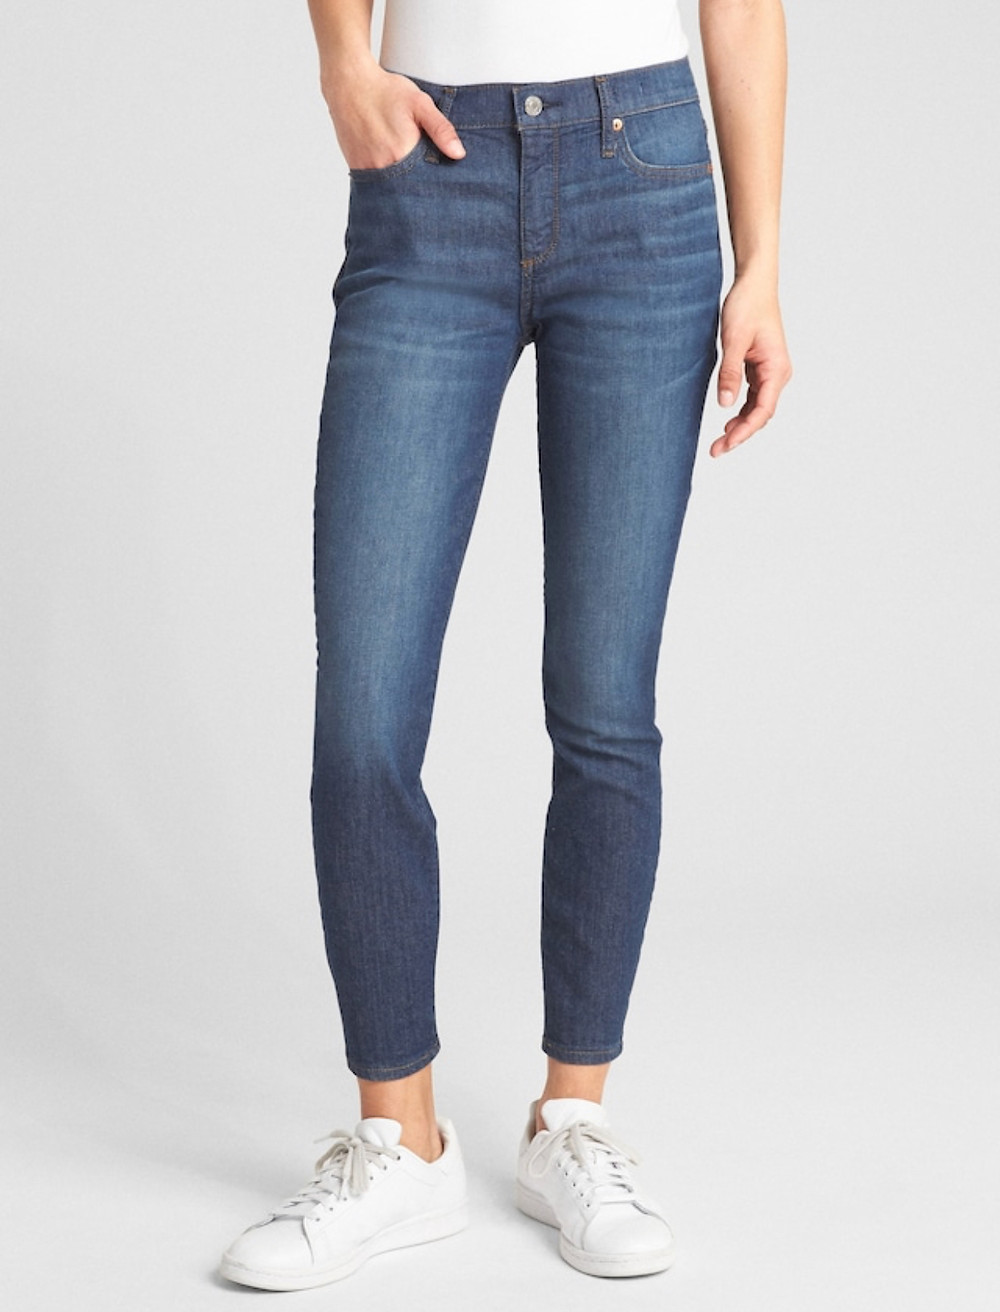 Wearlight mid rise true skinny ankle jeans